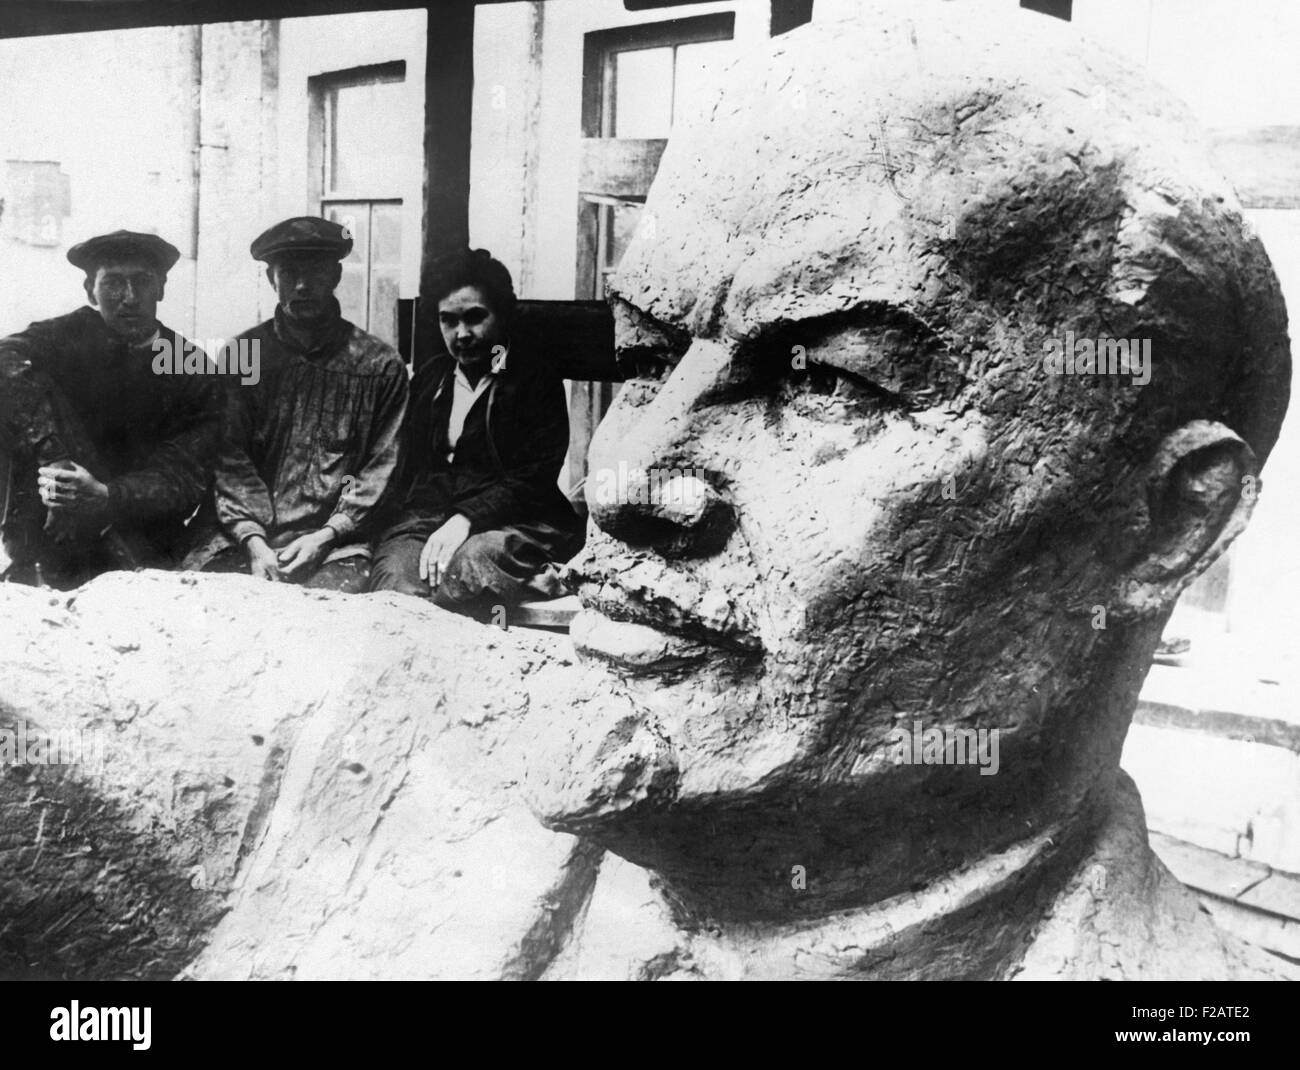 Colossal statue of Lenin, leader of the Bolshevik Revolution was unveiled in Moscow. Jan. 21, 1929. It was part - Stock Image